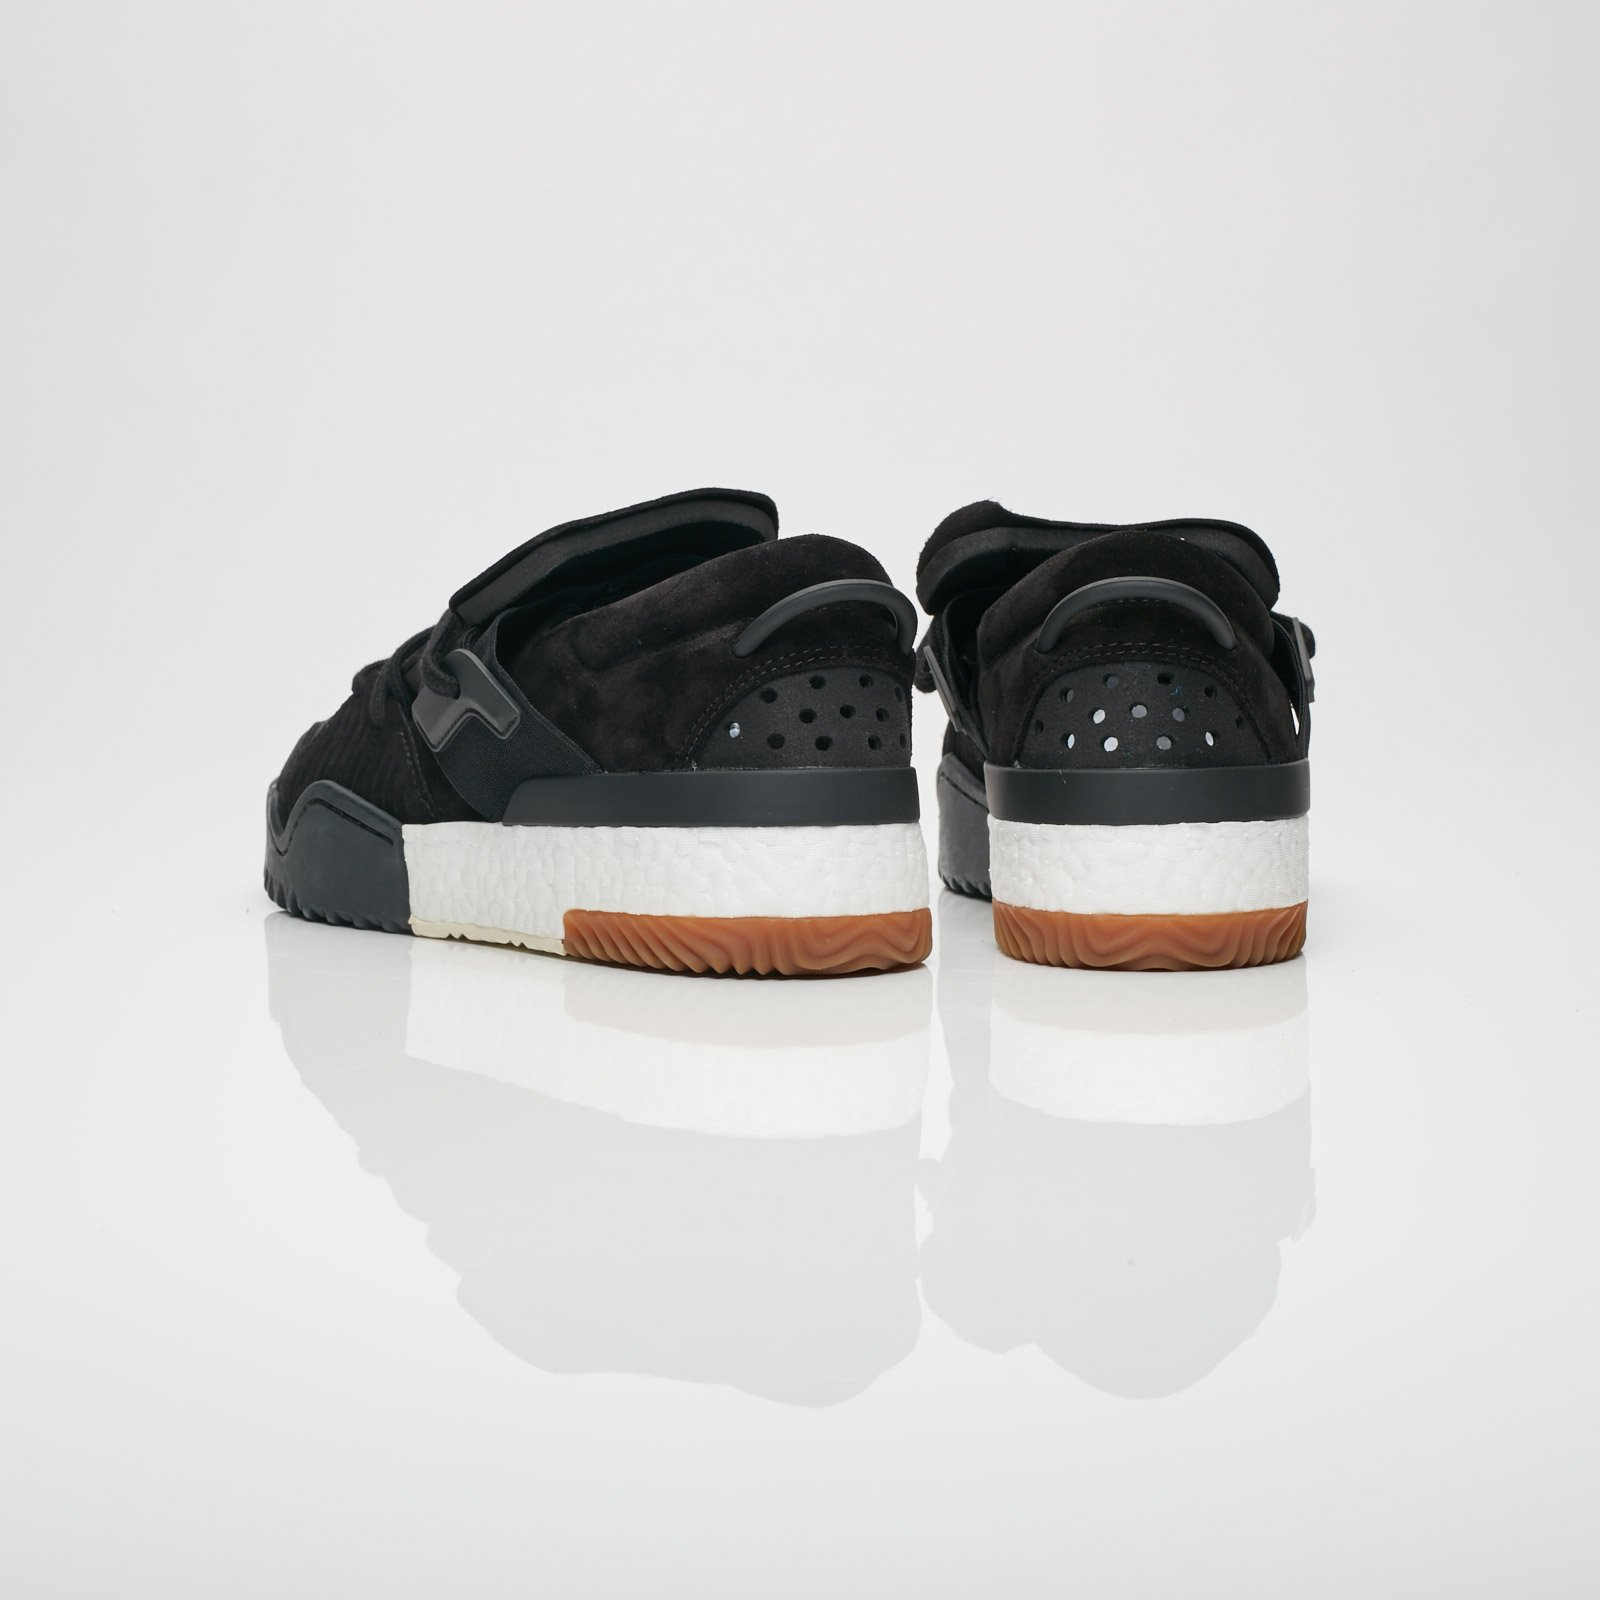 adidas Basketball Shoes Ac6847 Sneakersnstuff   sneakers